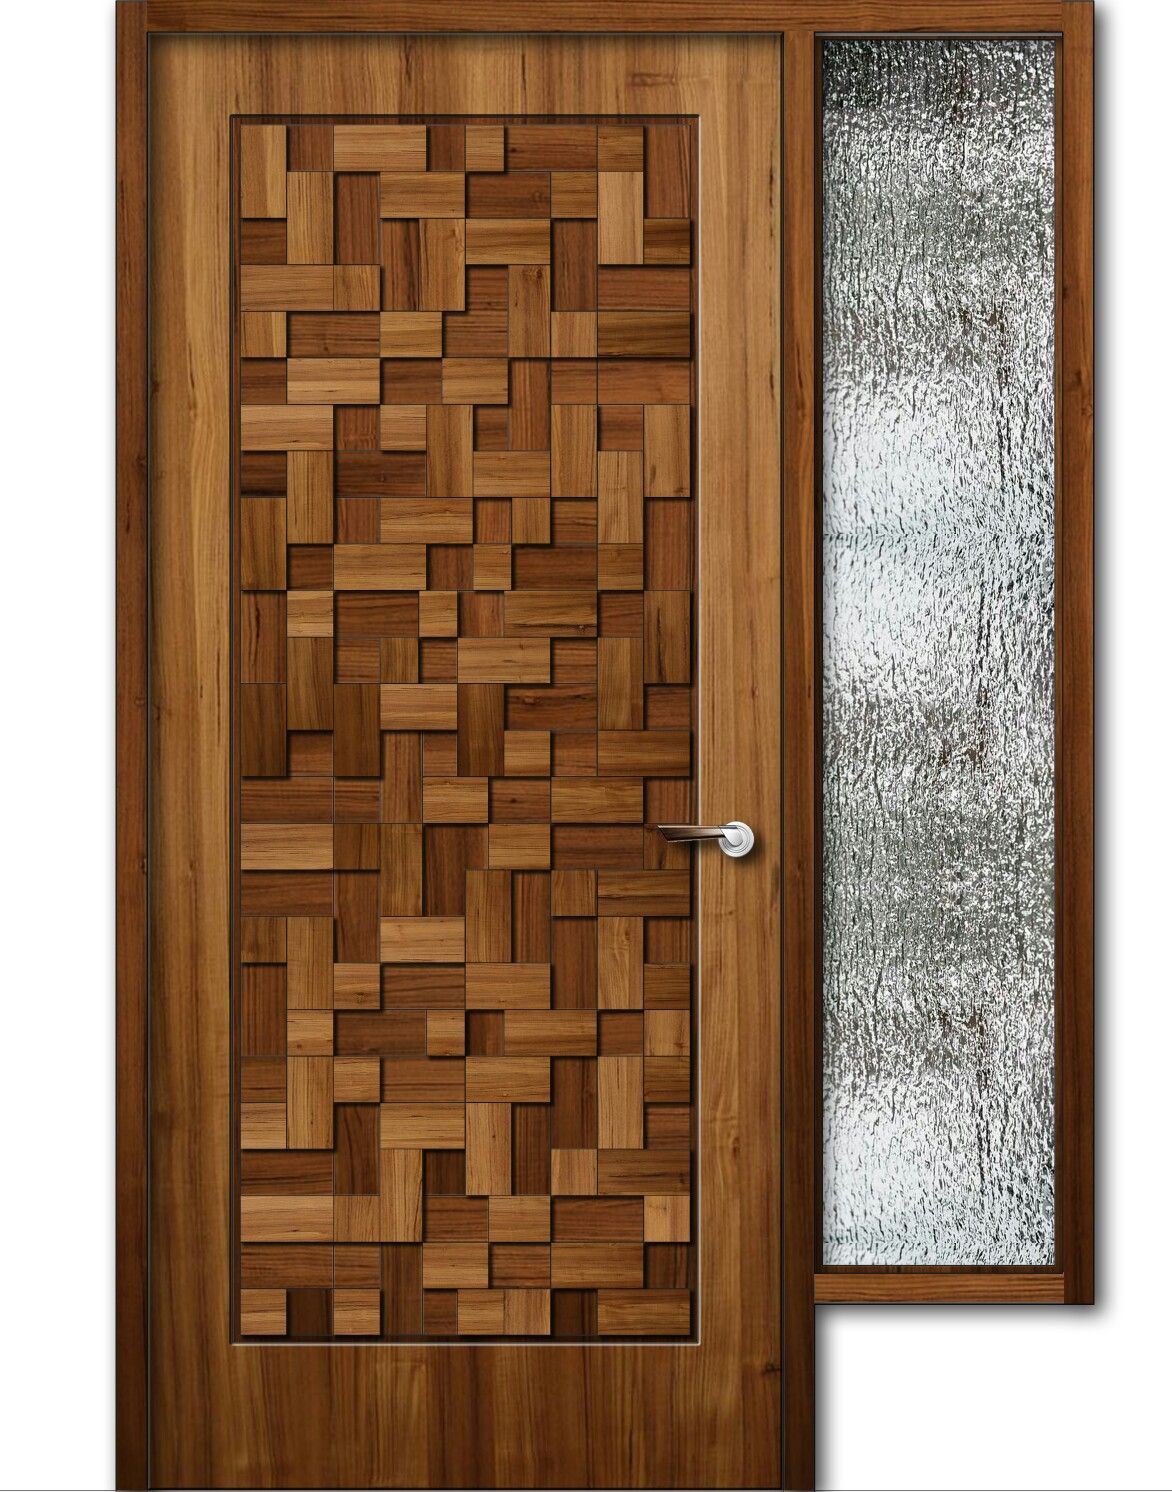 Teak wood finish wooden door with window 8feet height for Main door design of wood